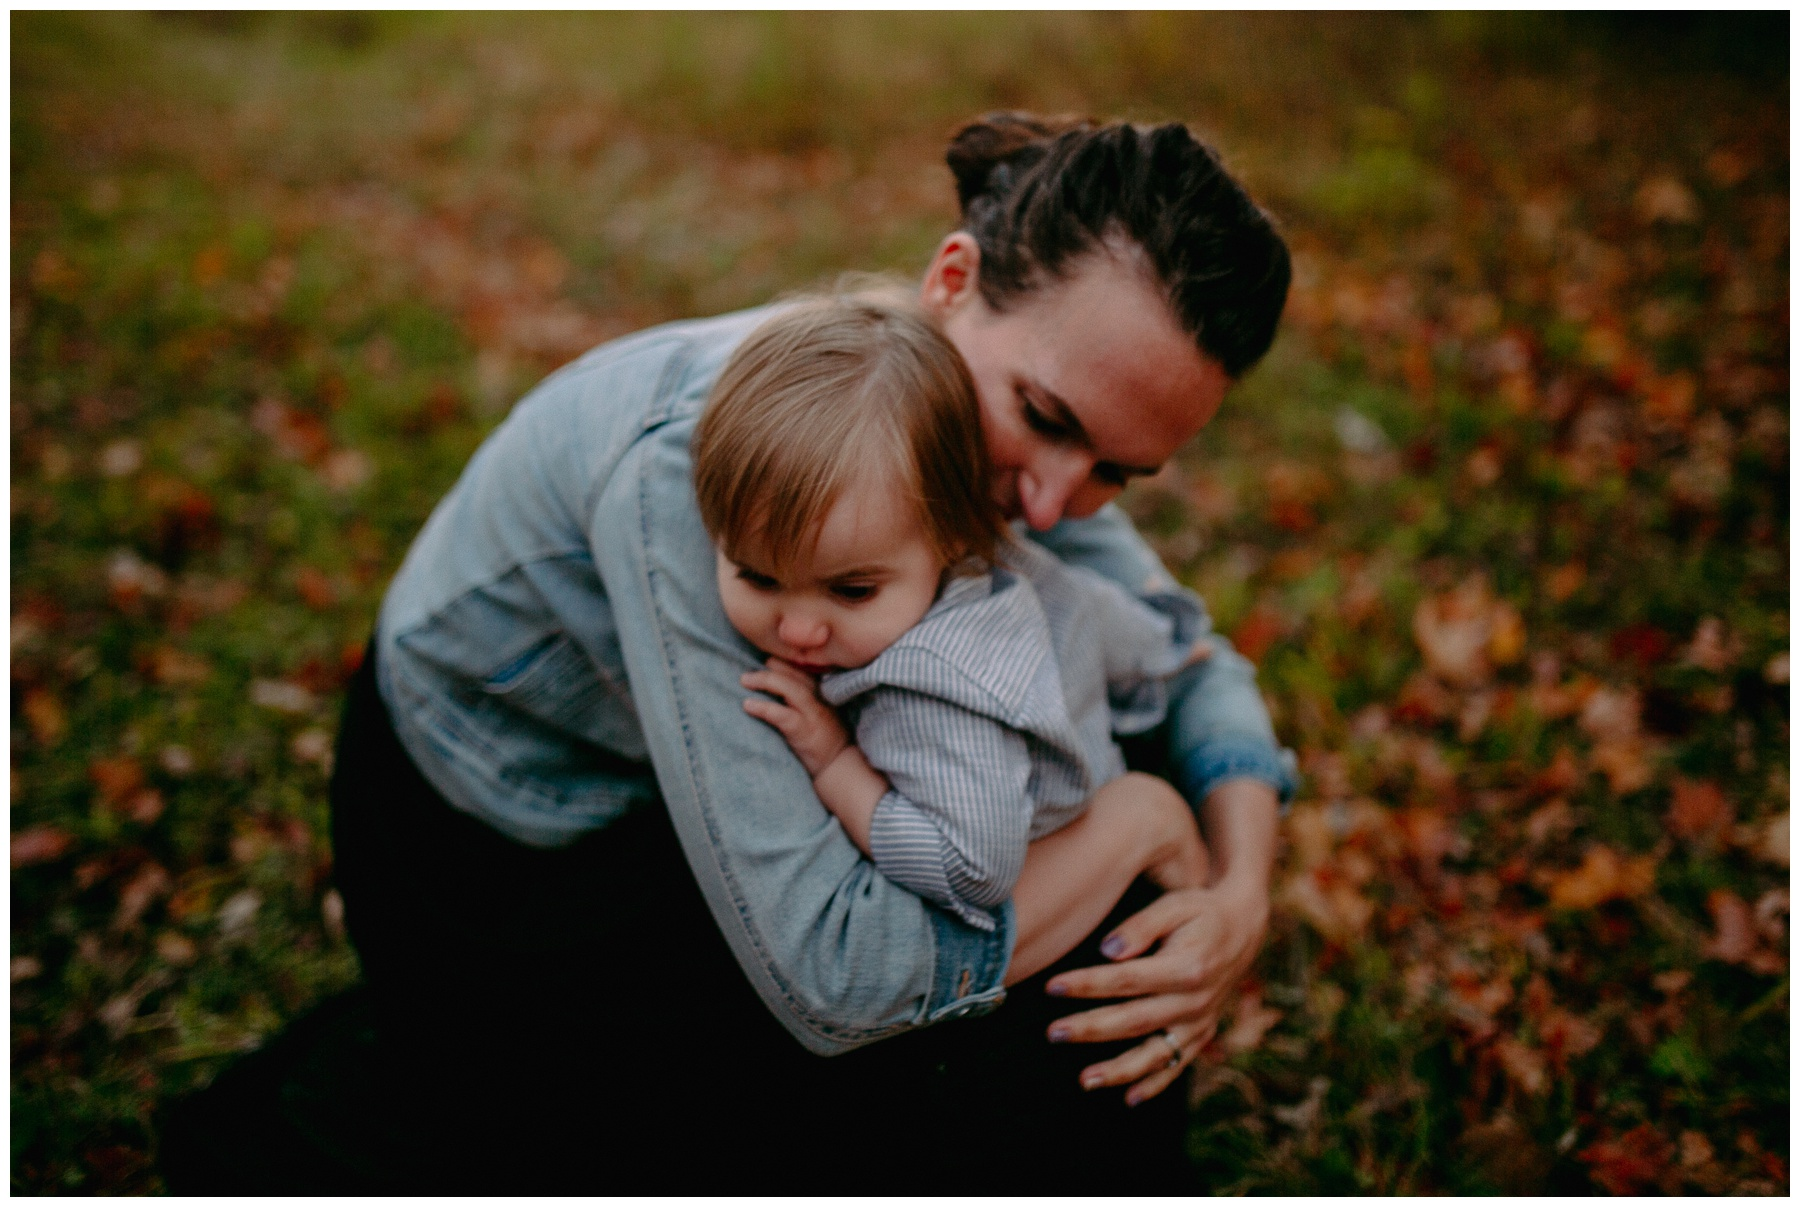 kerry ford photography - fall autumn family session perth029.jpg